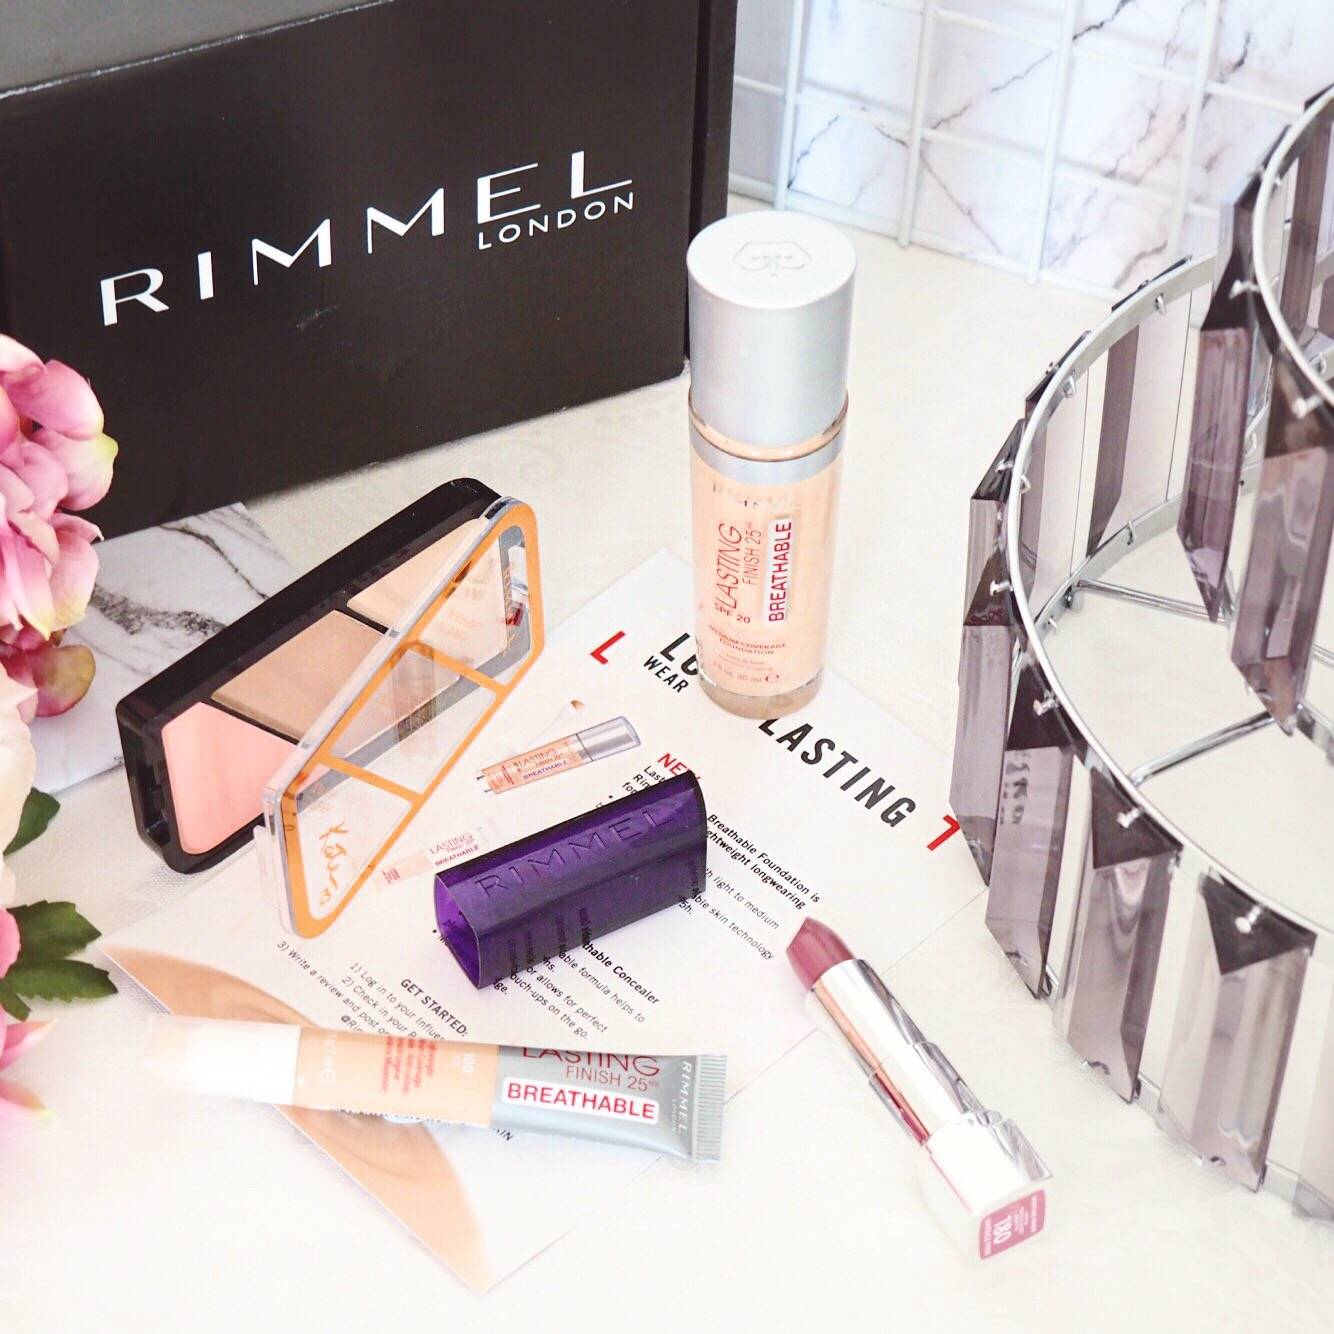 Rimmel London Long Lasting Breathable Foundation & Concealer Review